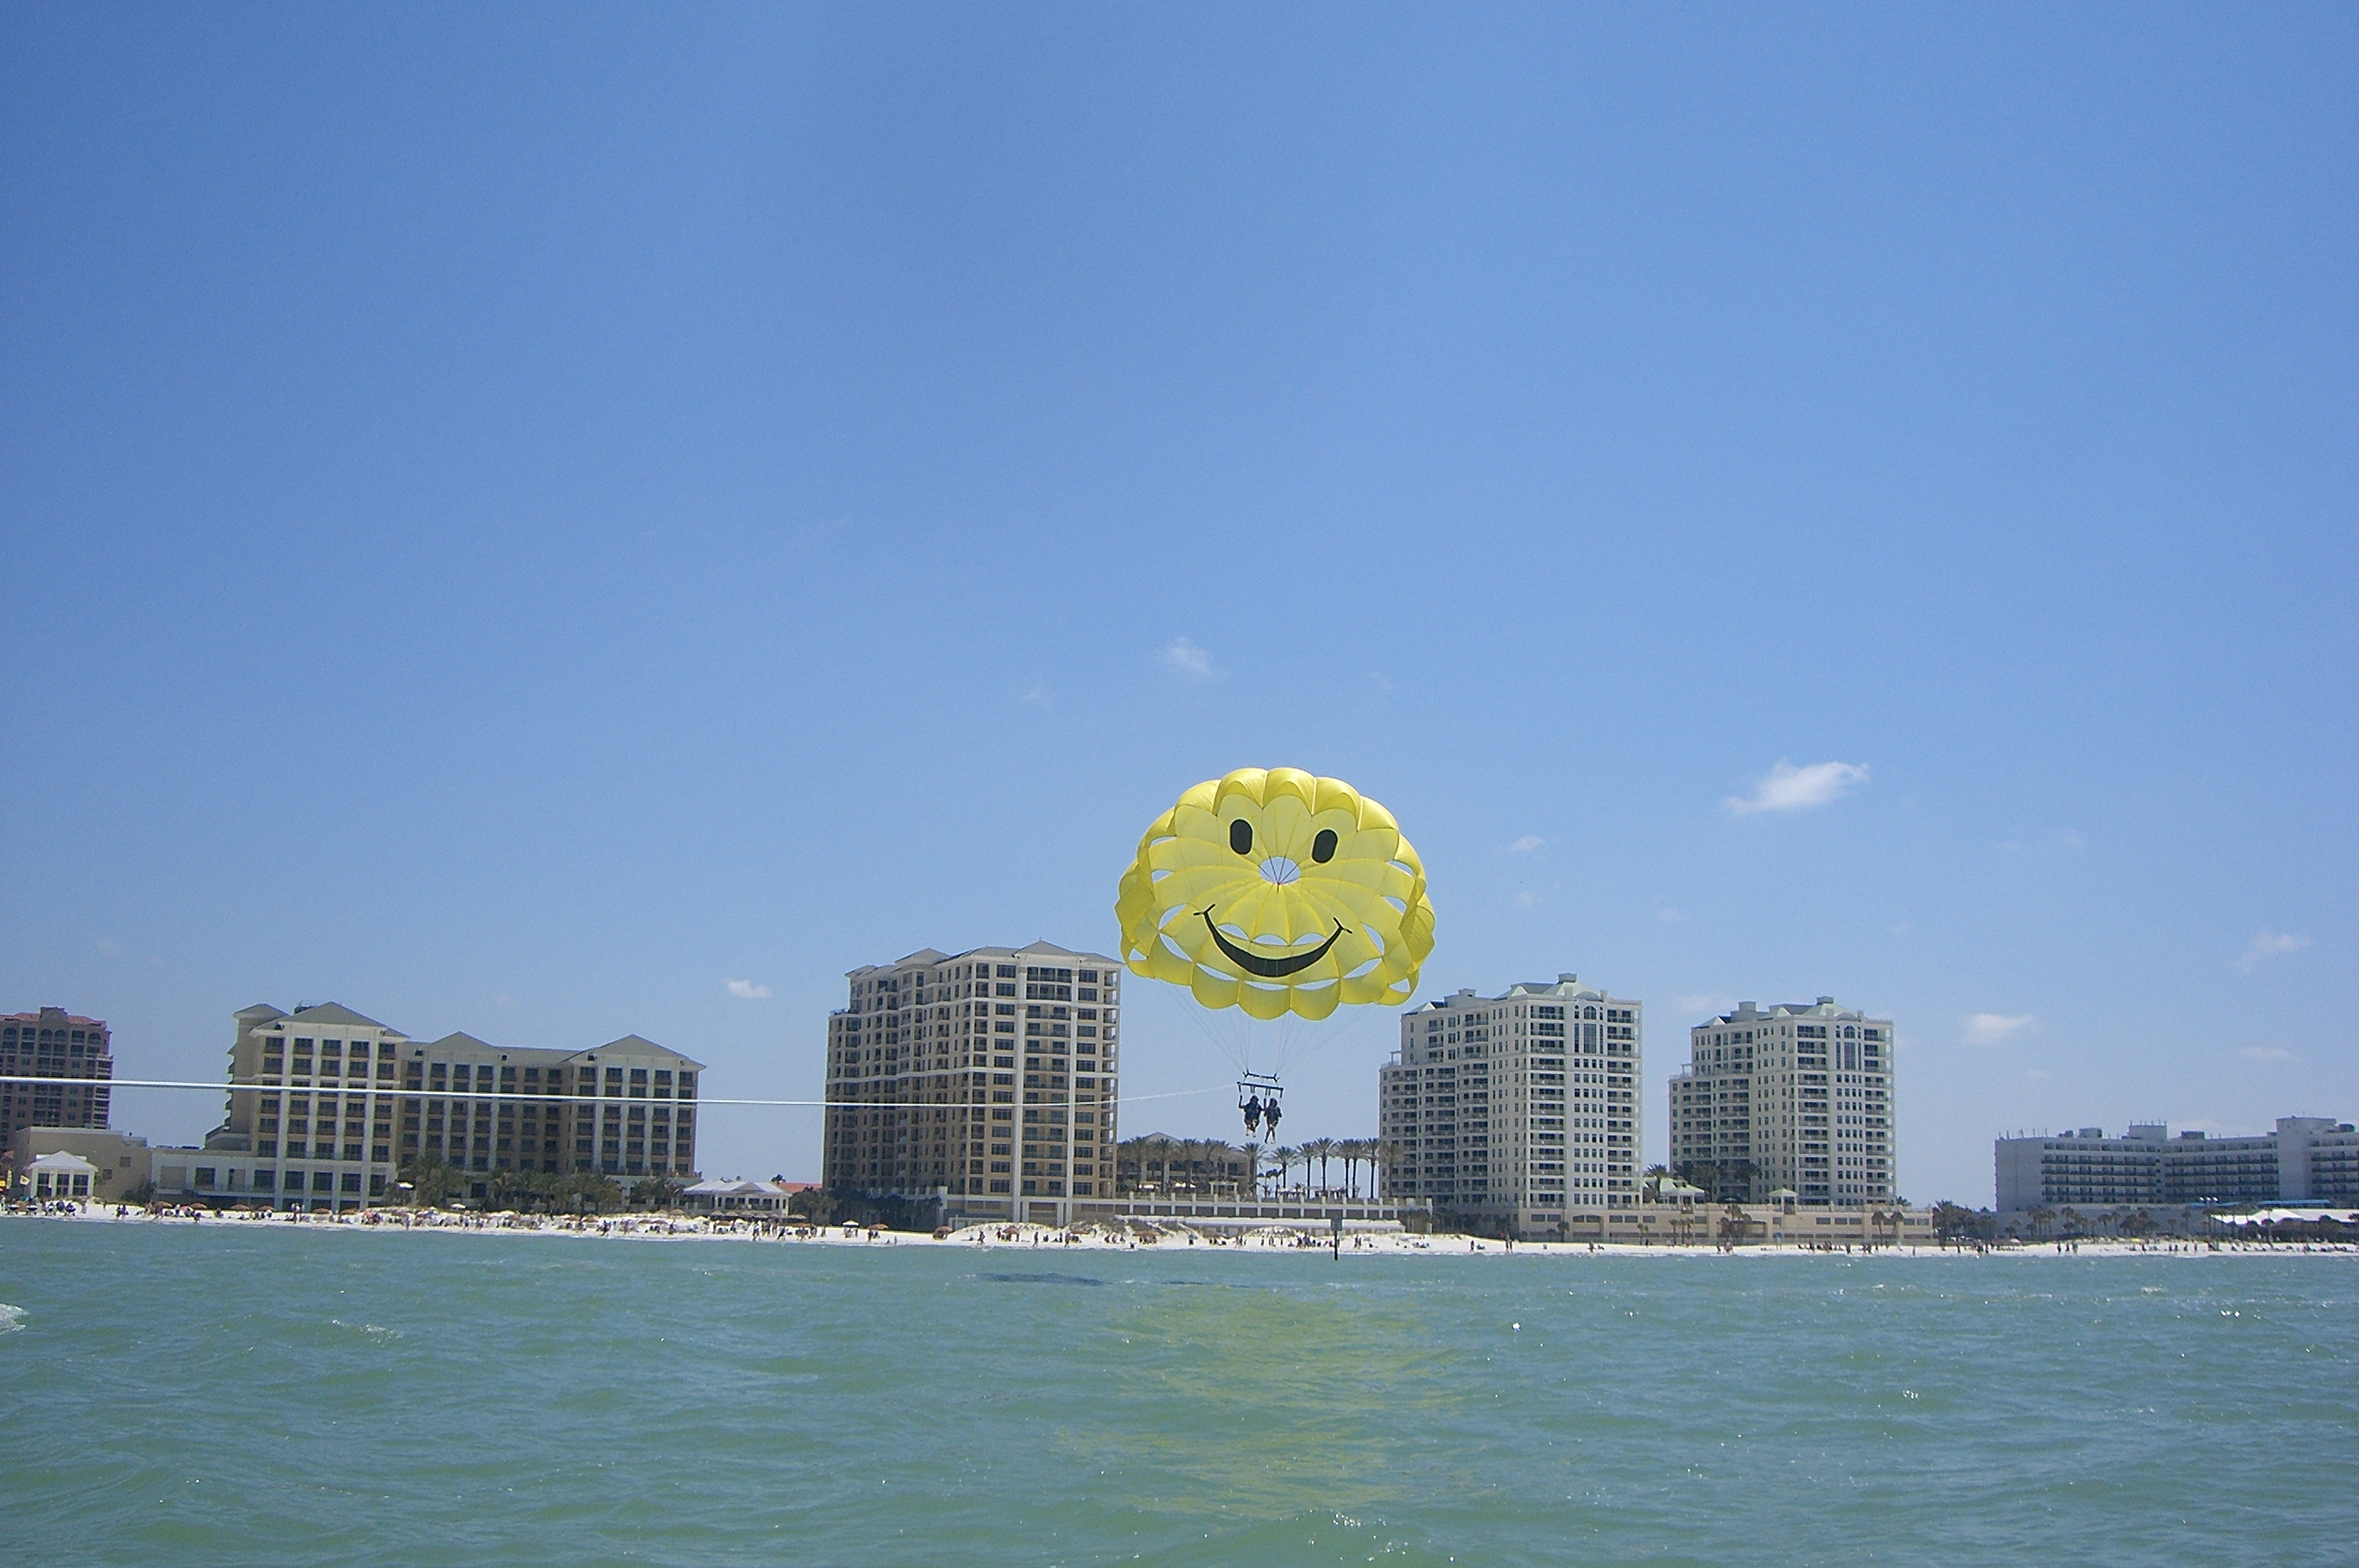 Parasailing at Clearwater Beach, FL